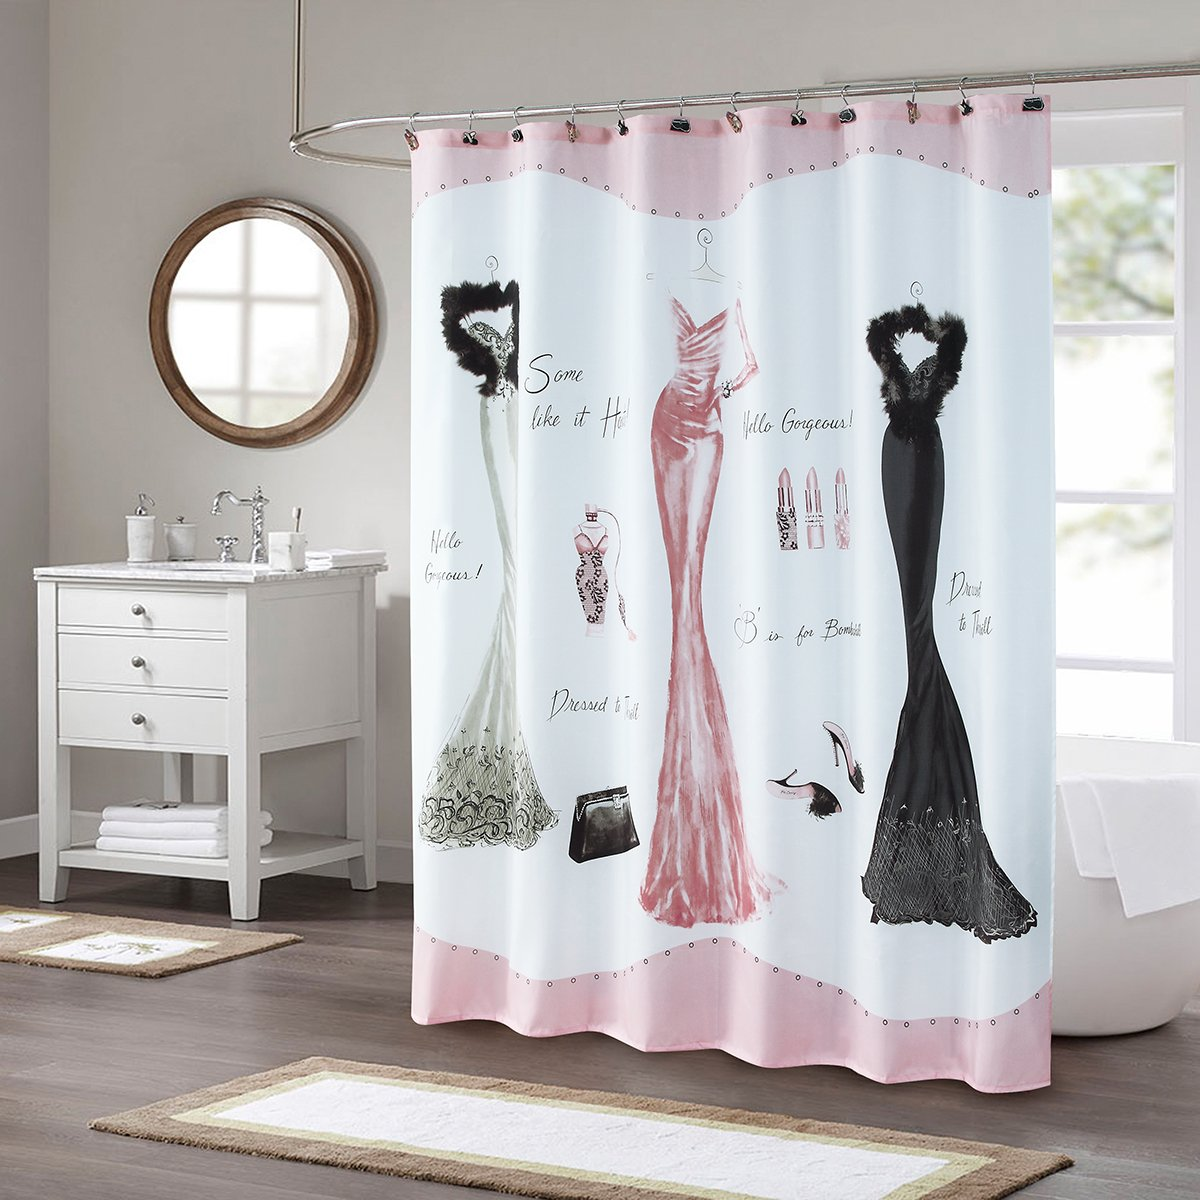 shower qlt wid essential p hei cute curtains curtain tahka spin home fabric prod butterfly